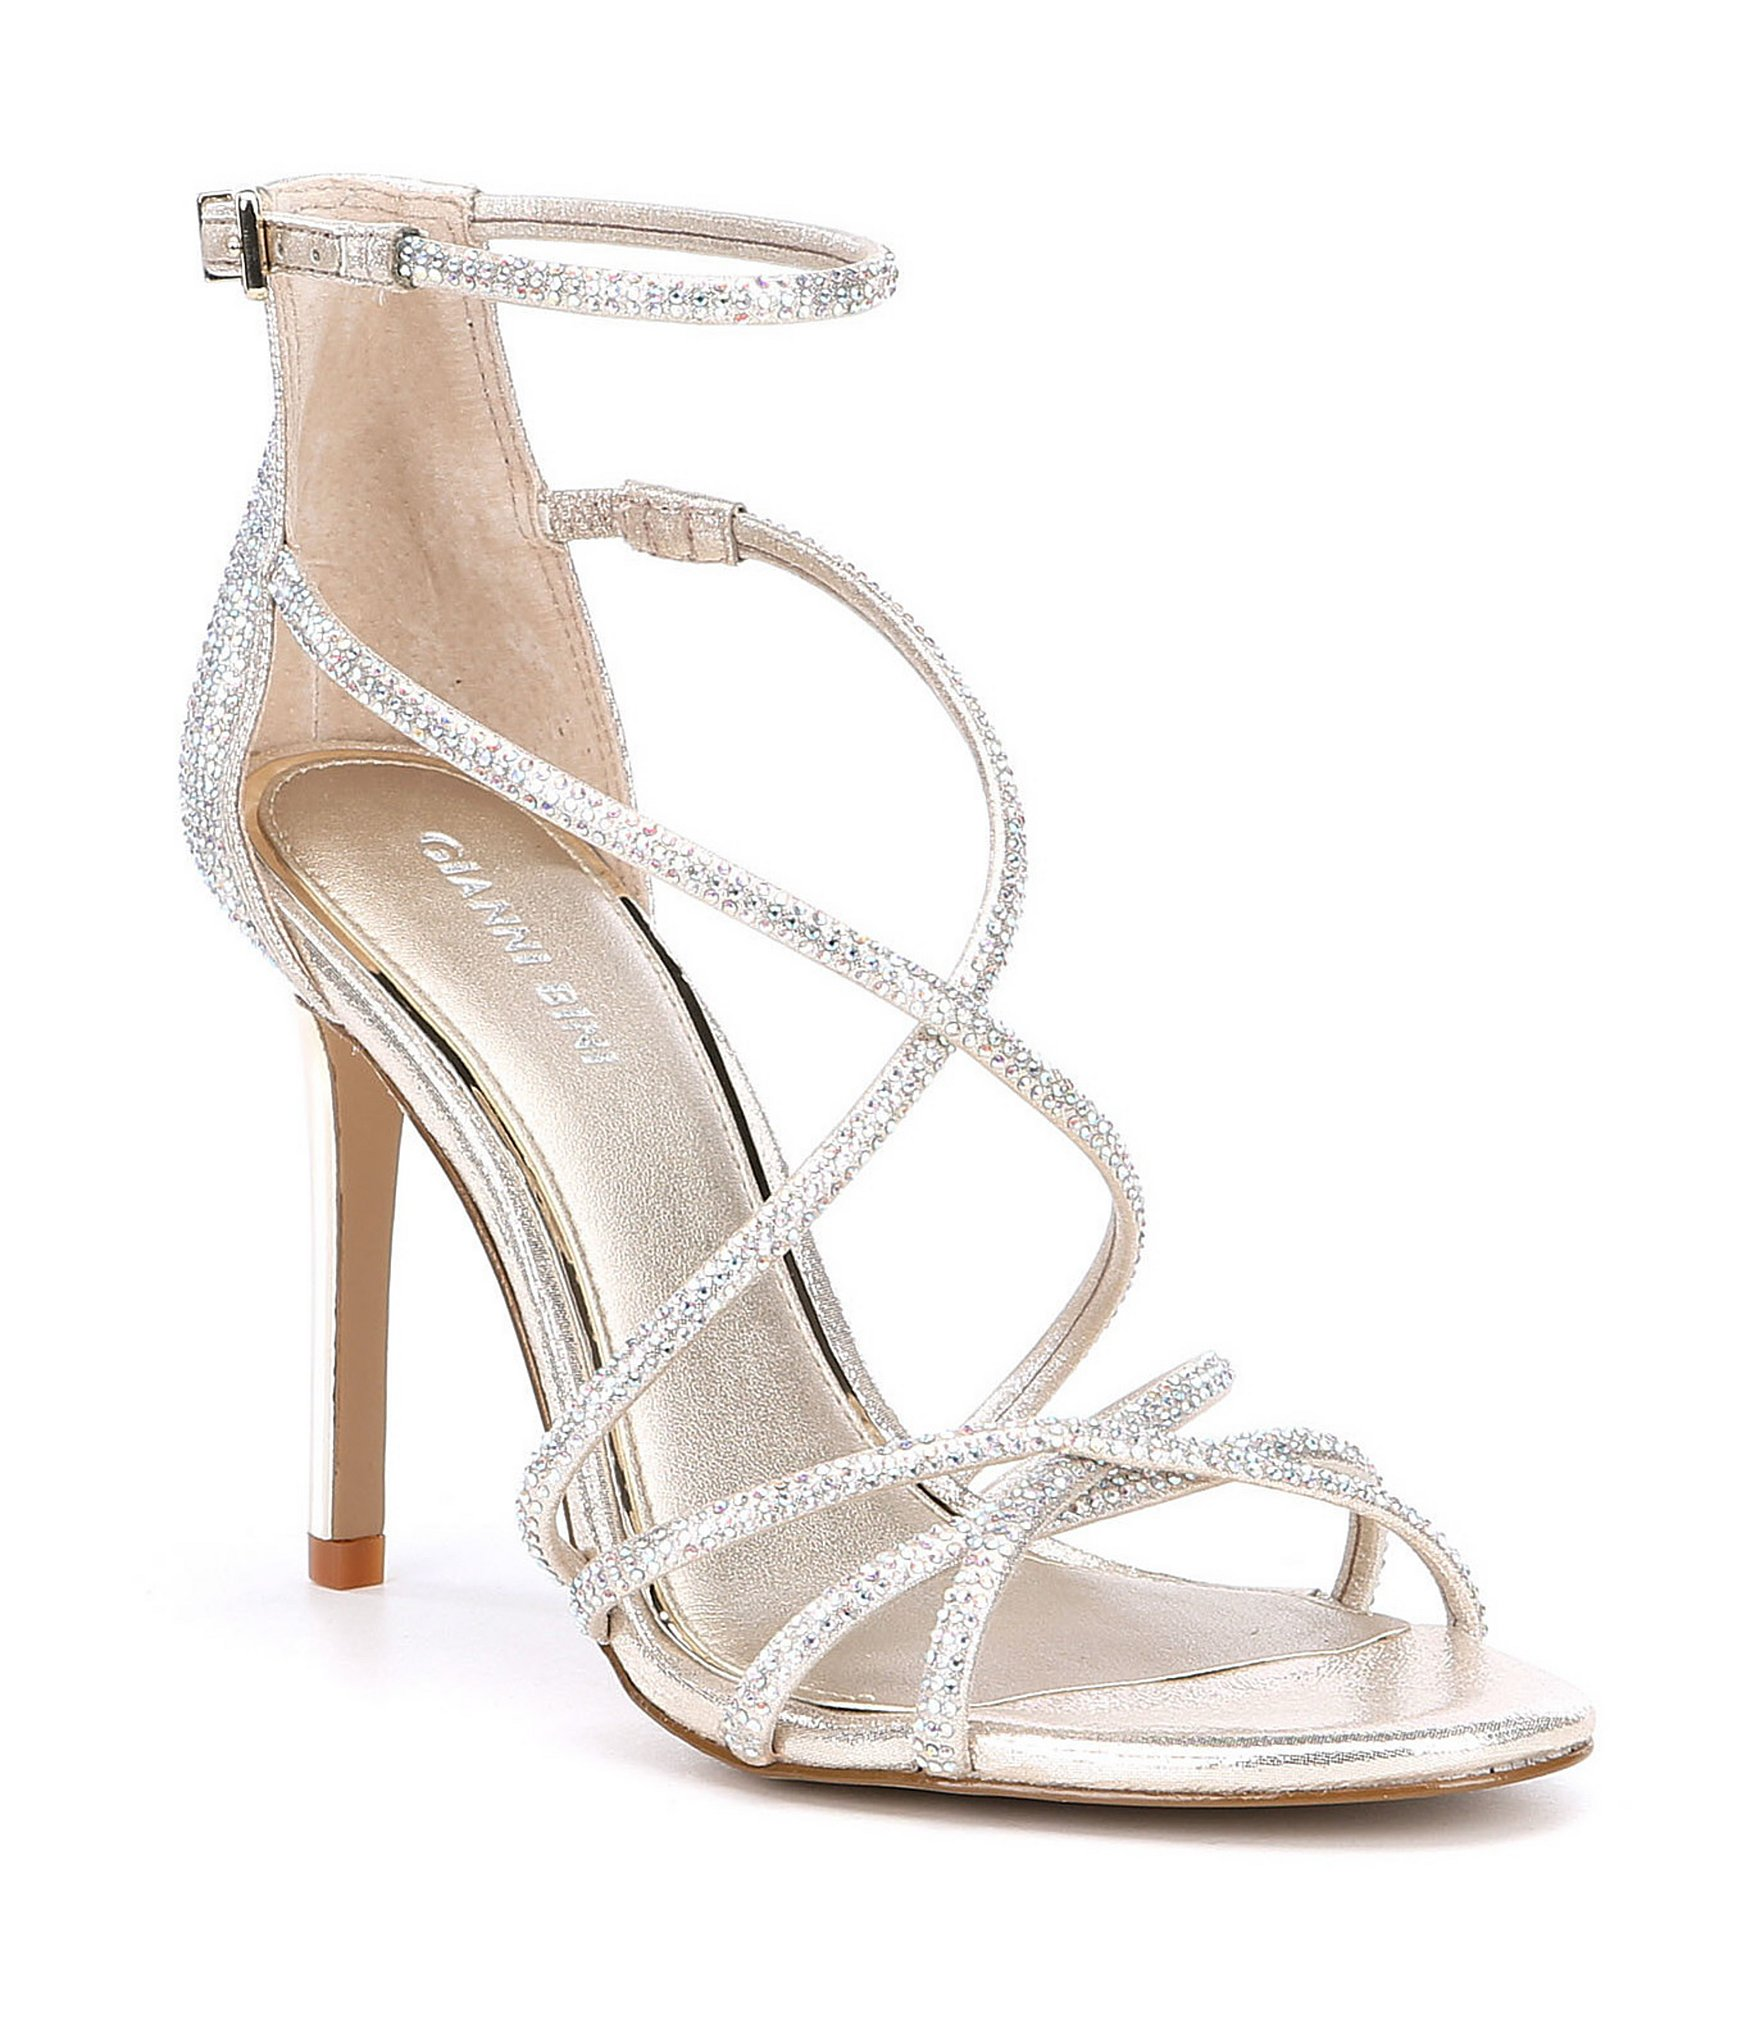 nordstrom rack bridal shoes photo - 1